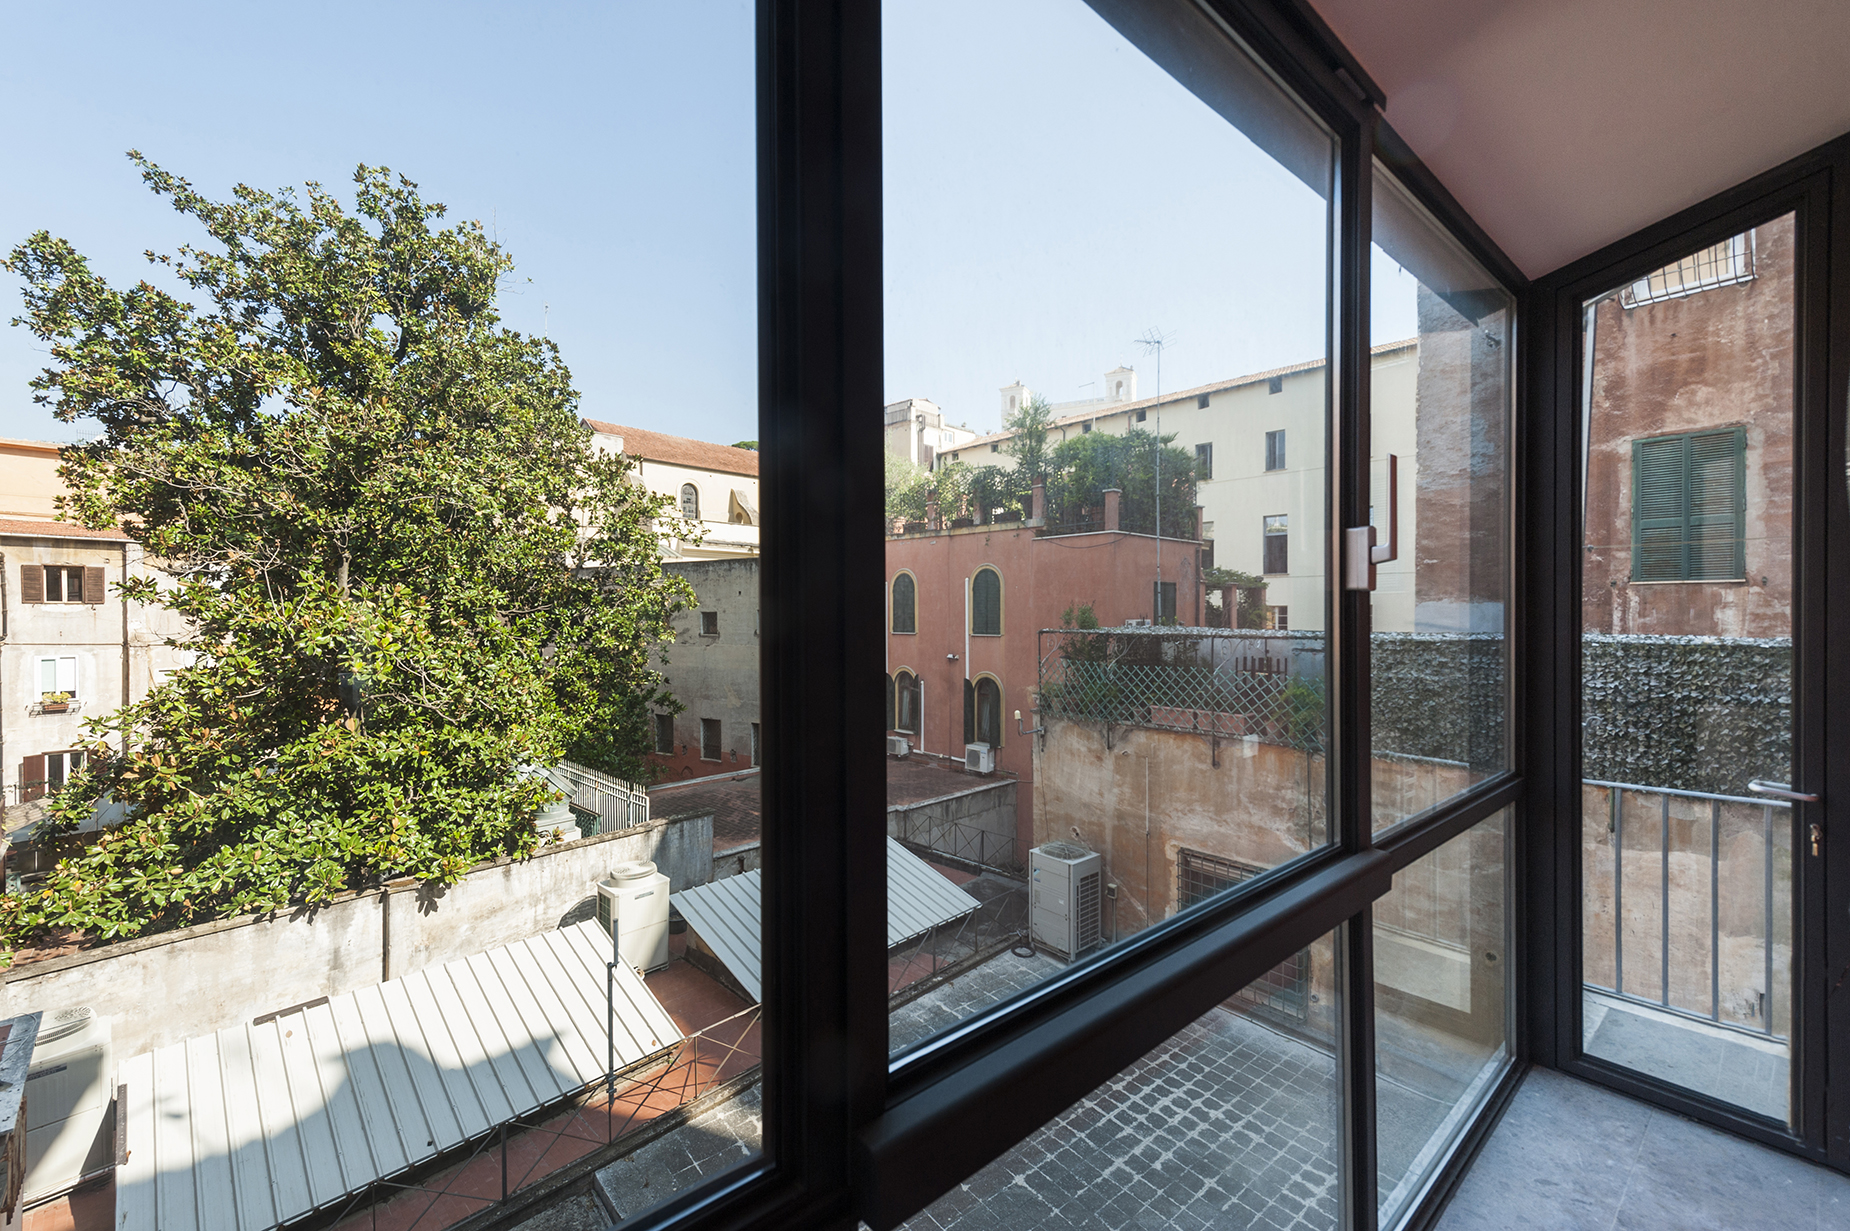 Property Of Magnificent apartment overlooking Piazza di Spagna